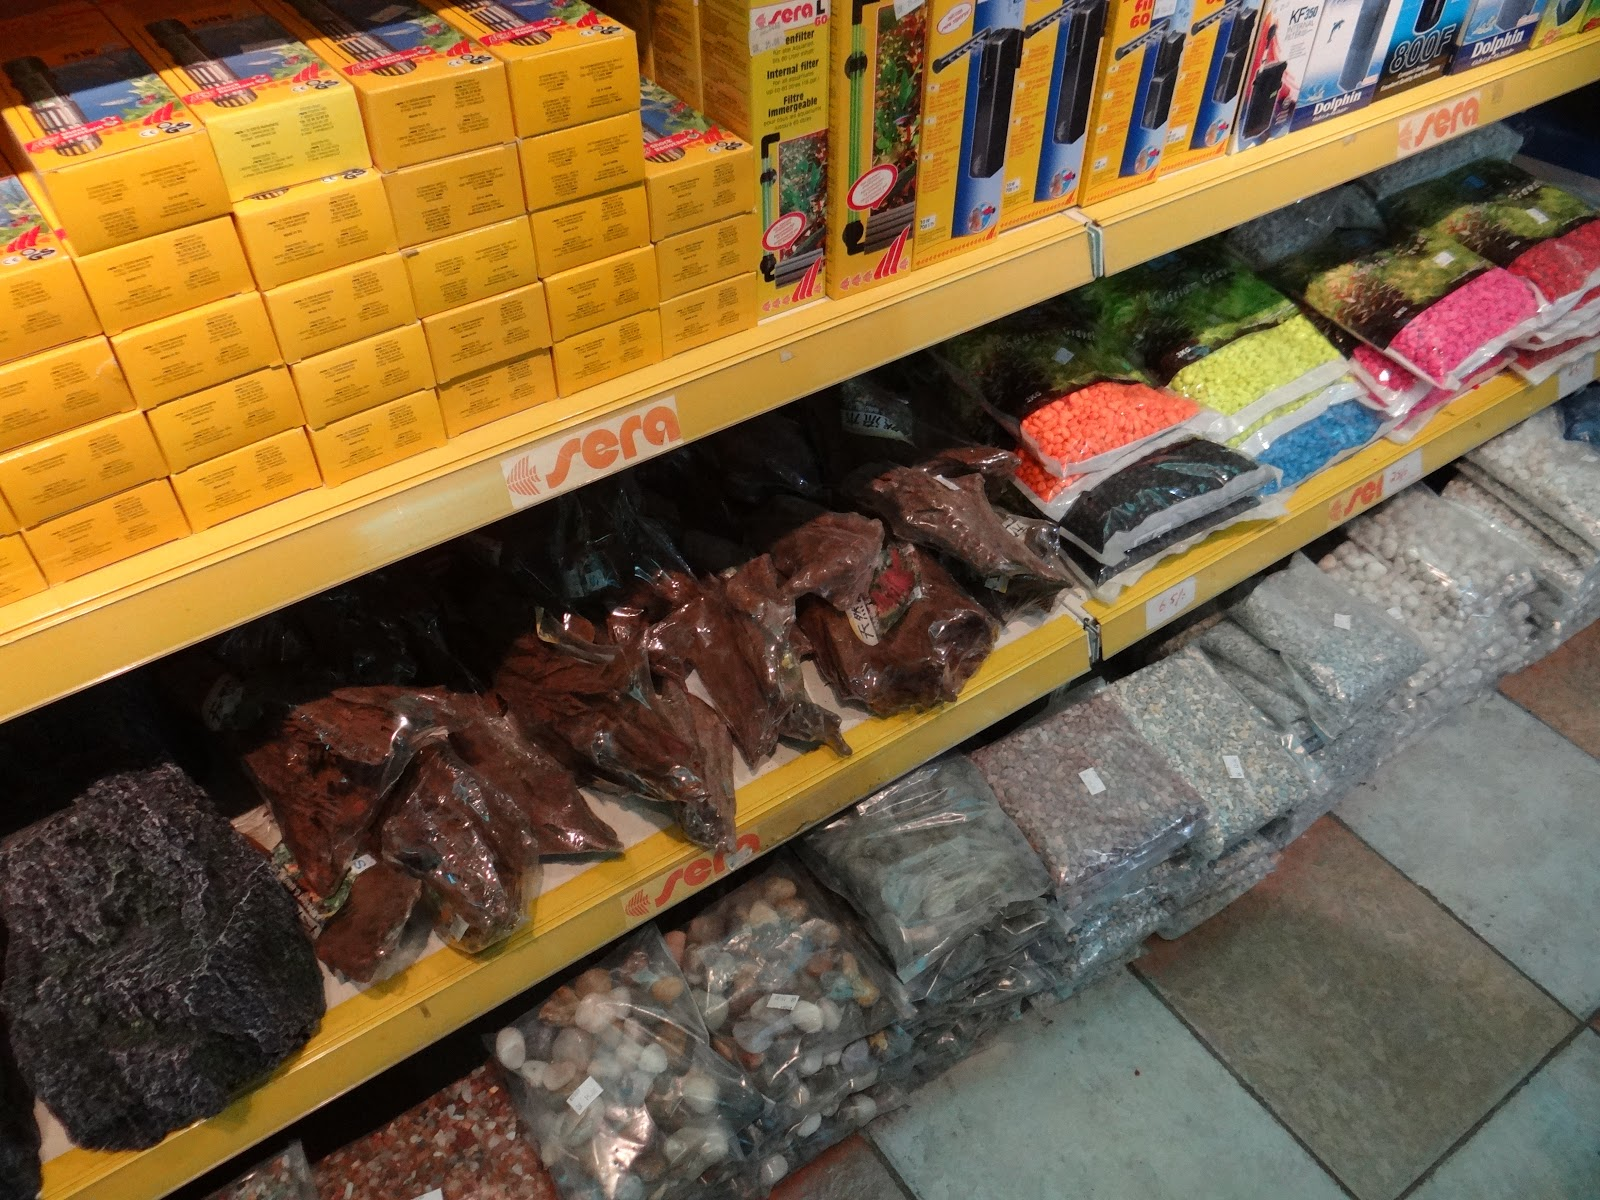 Fish aquarium for sale in qatar - Gravel Of Many Colours Logs And Pumps